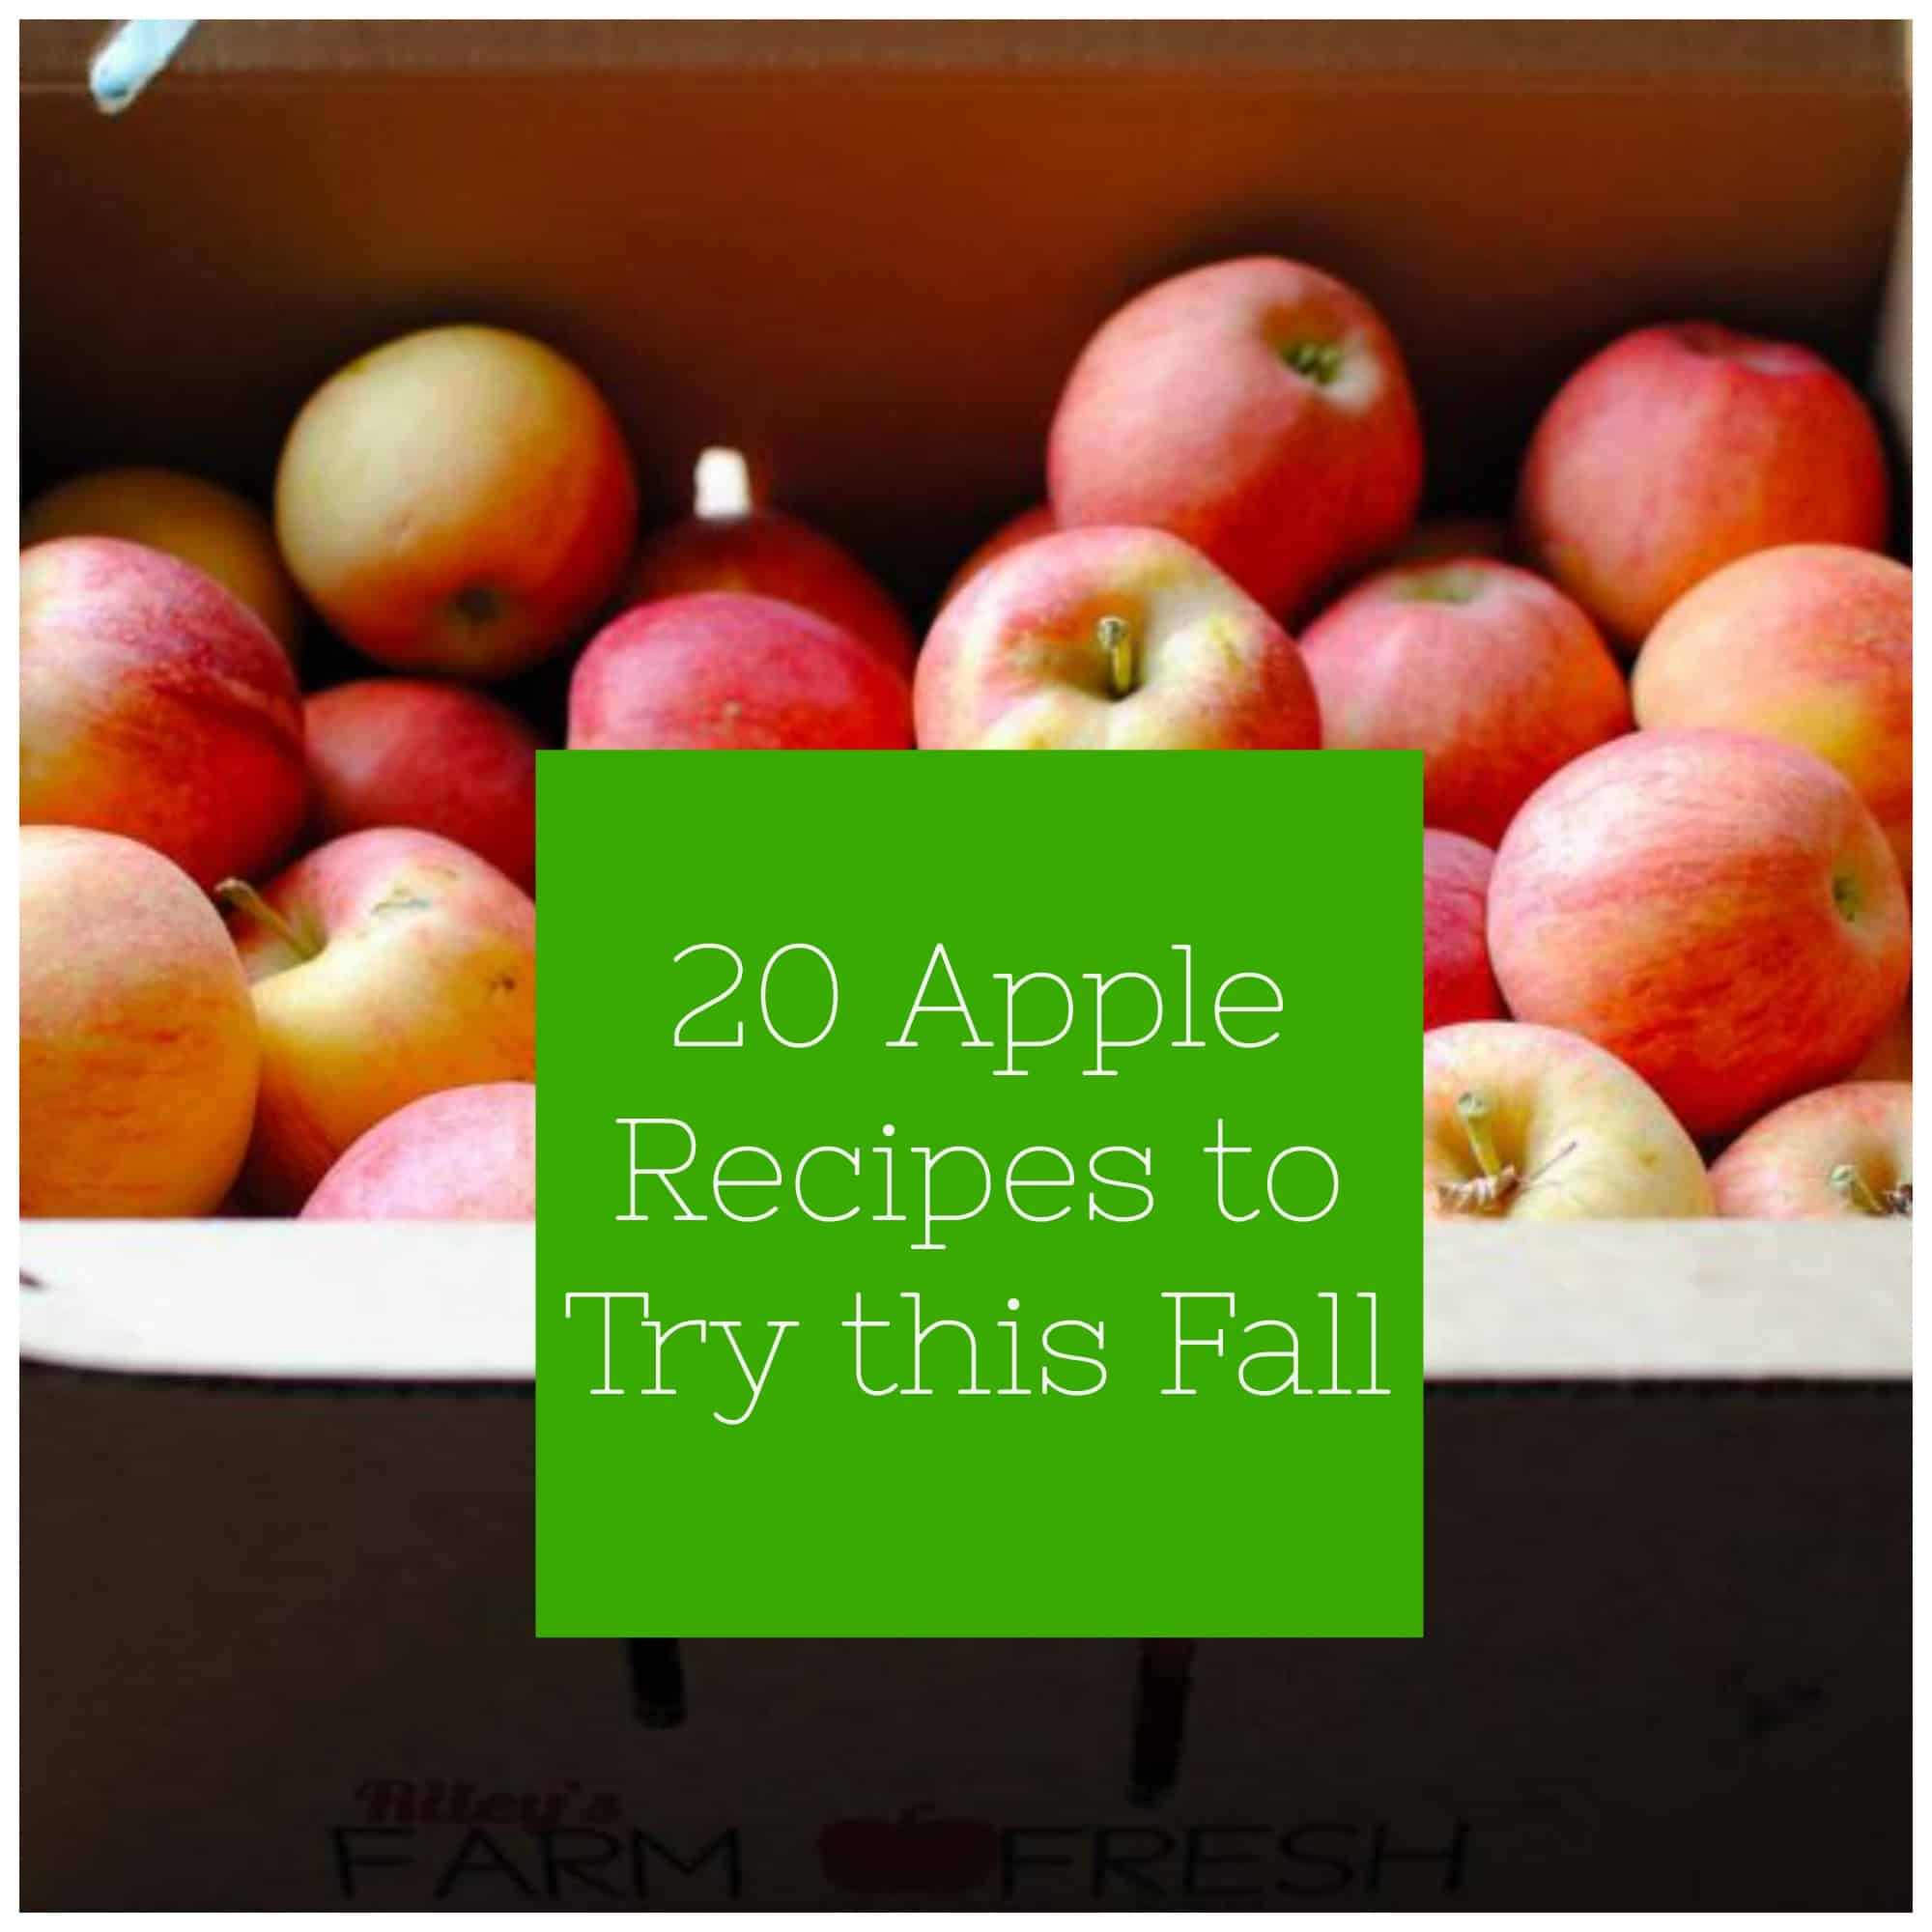 20 Apple Recipes To Try This Fall